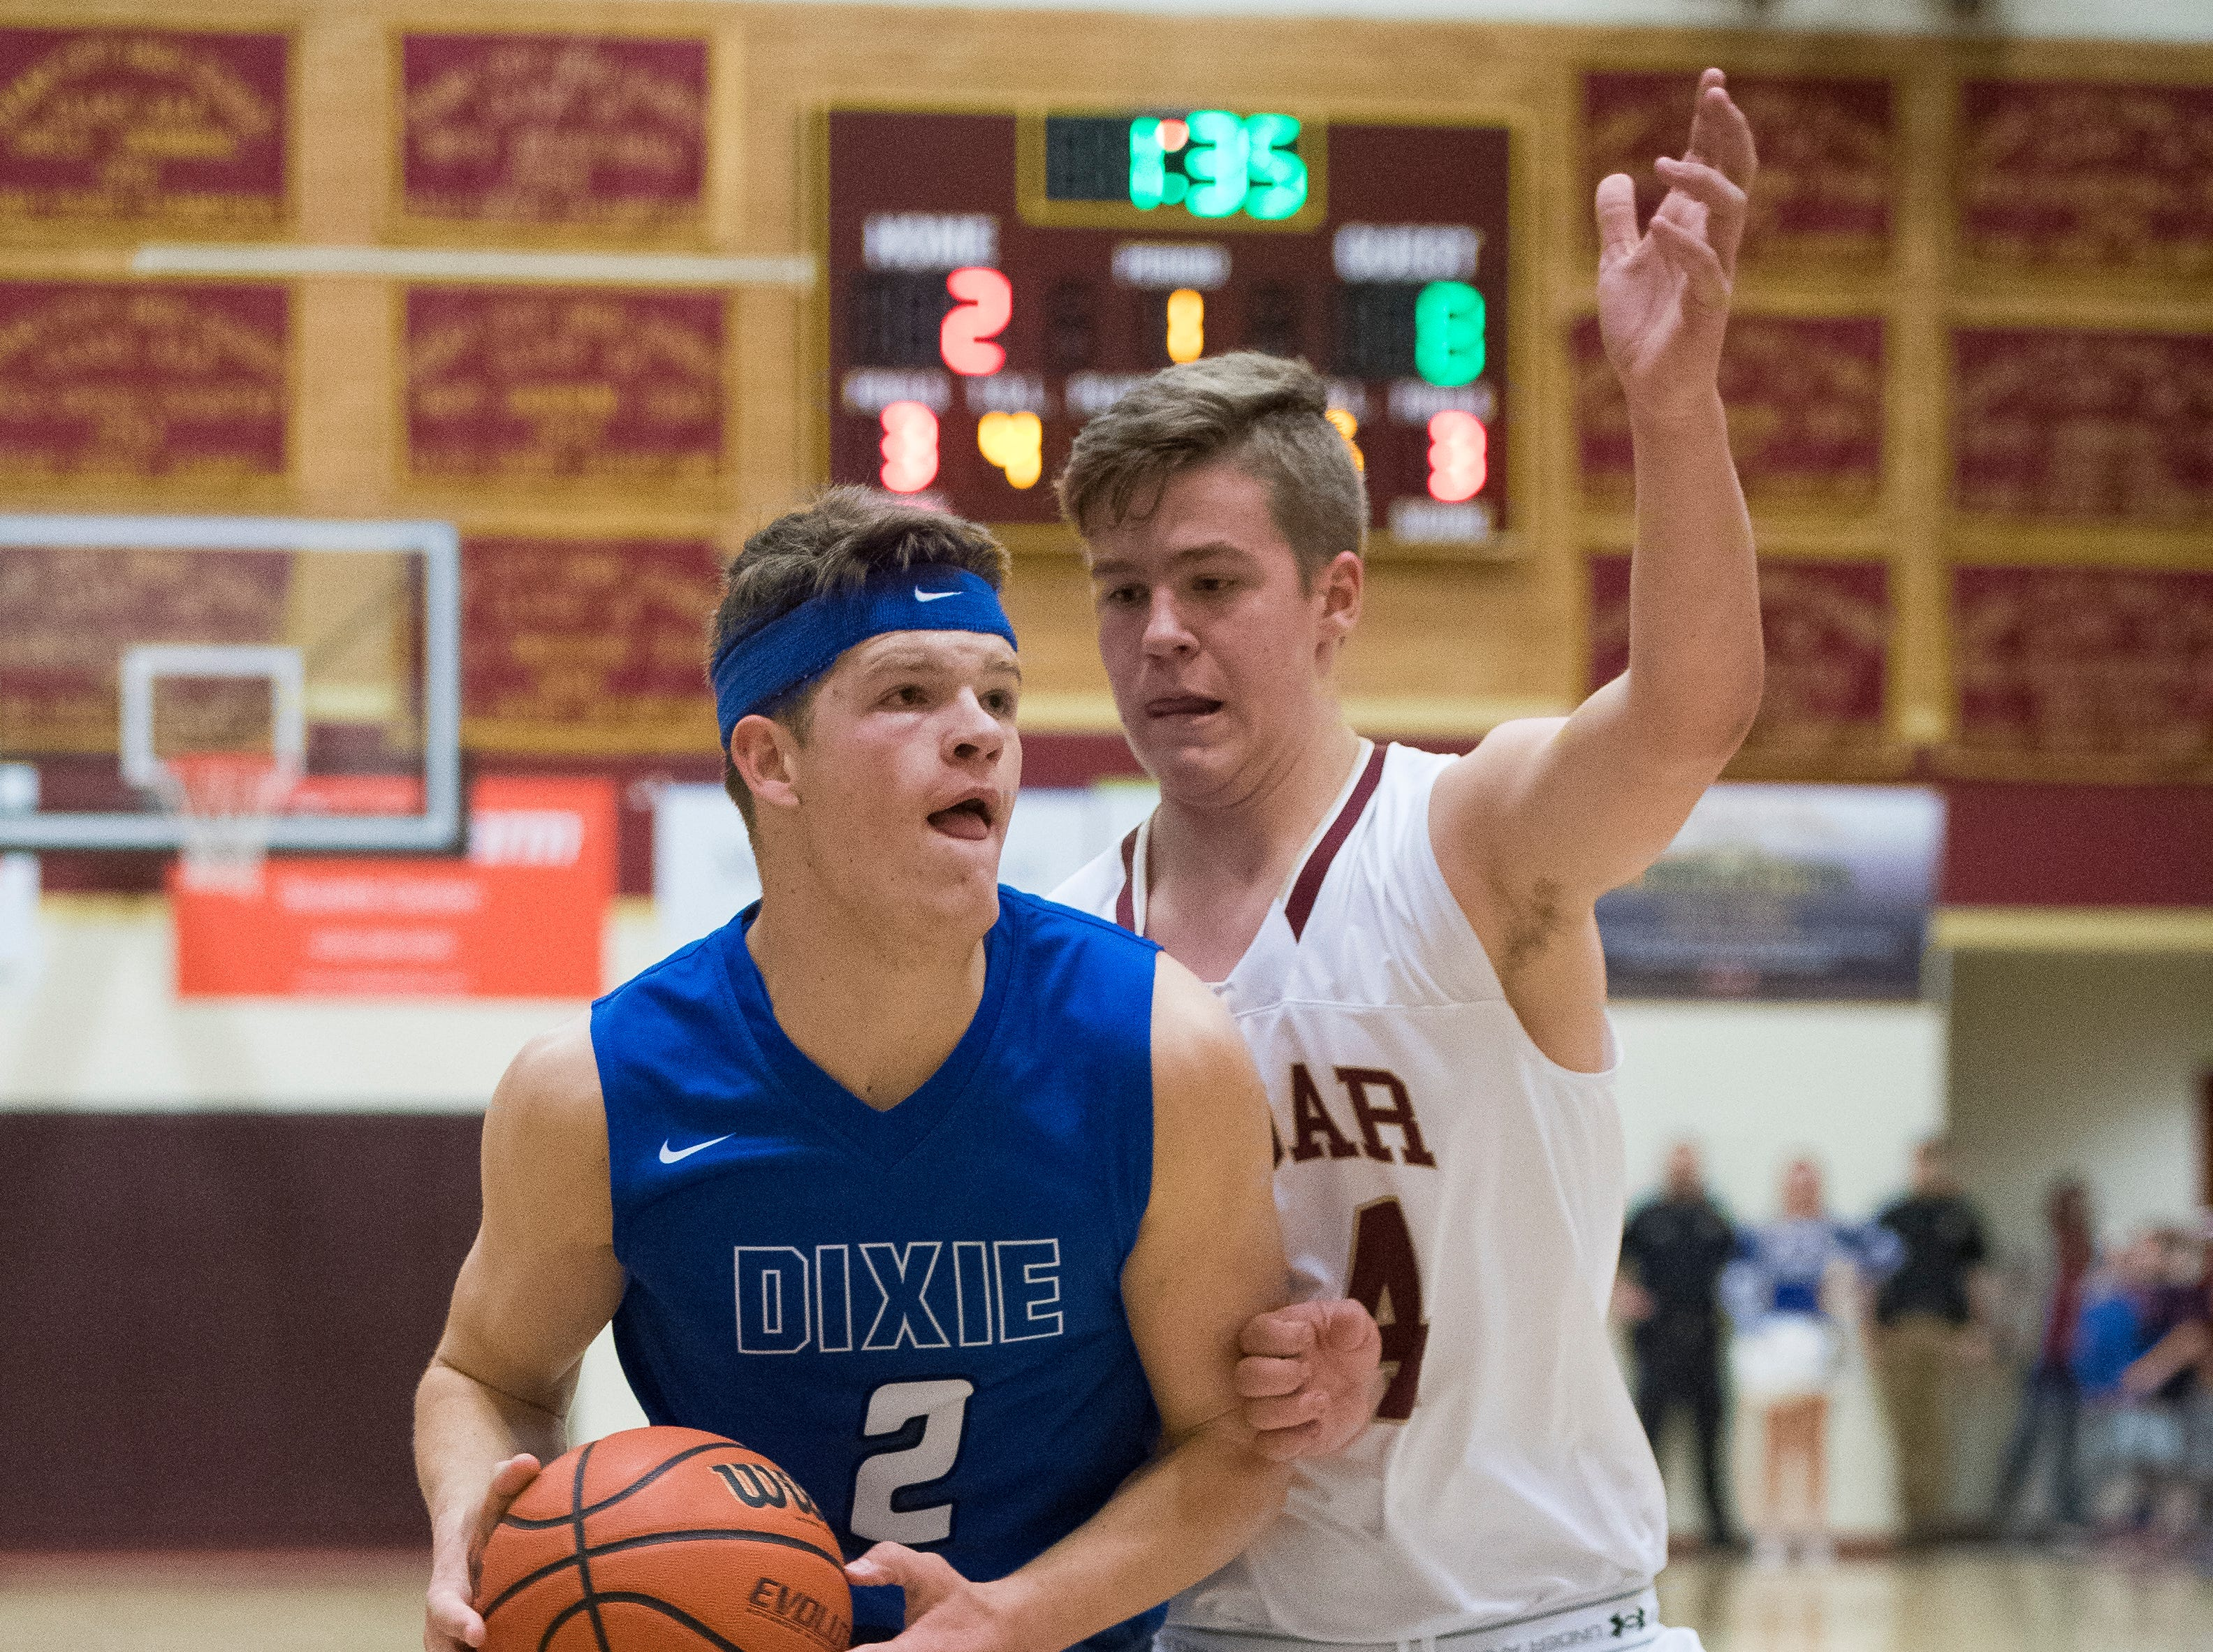 Dixie High School senior Justin Weidauer (2) pushes into the key against Cedar at CHS Wednesday, December 19, 2018. Trading the lead all game, Dixie won, 49-45.